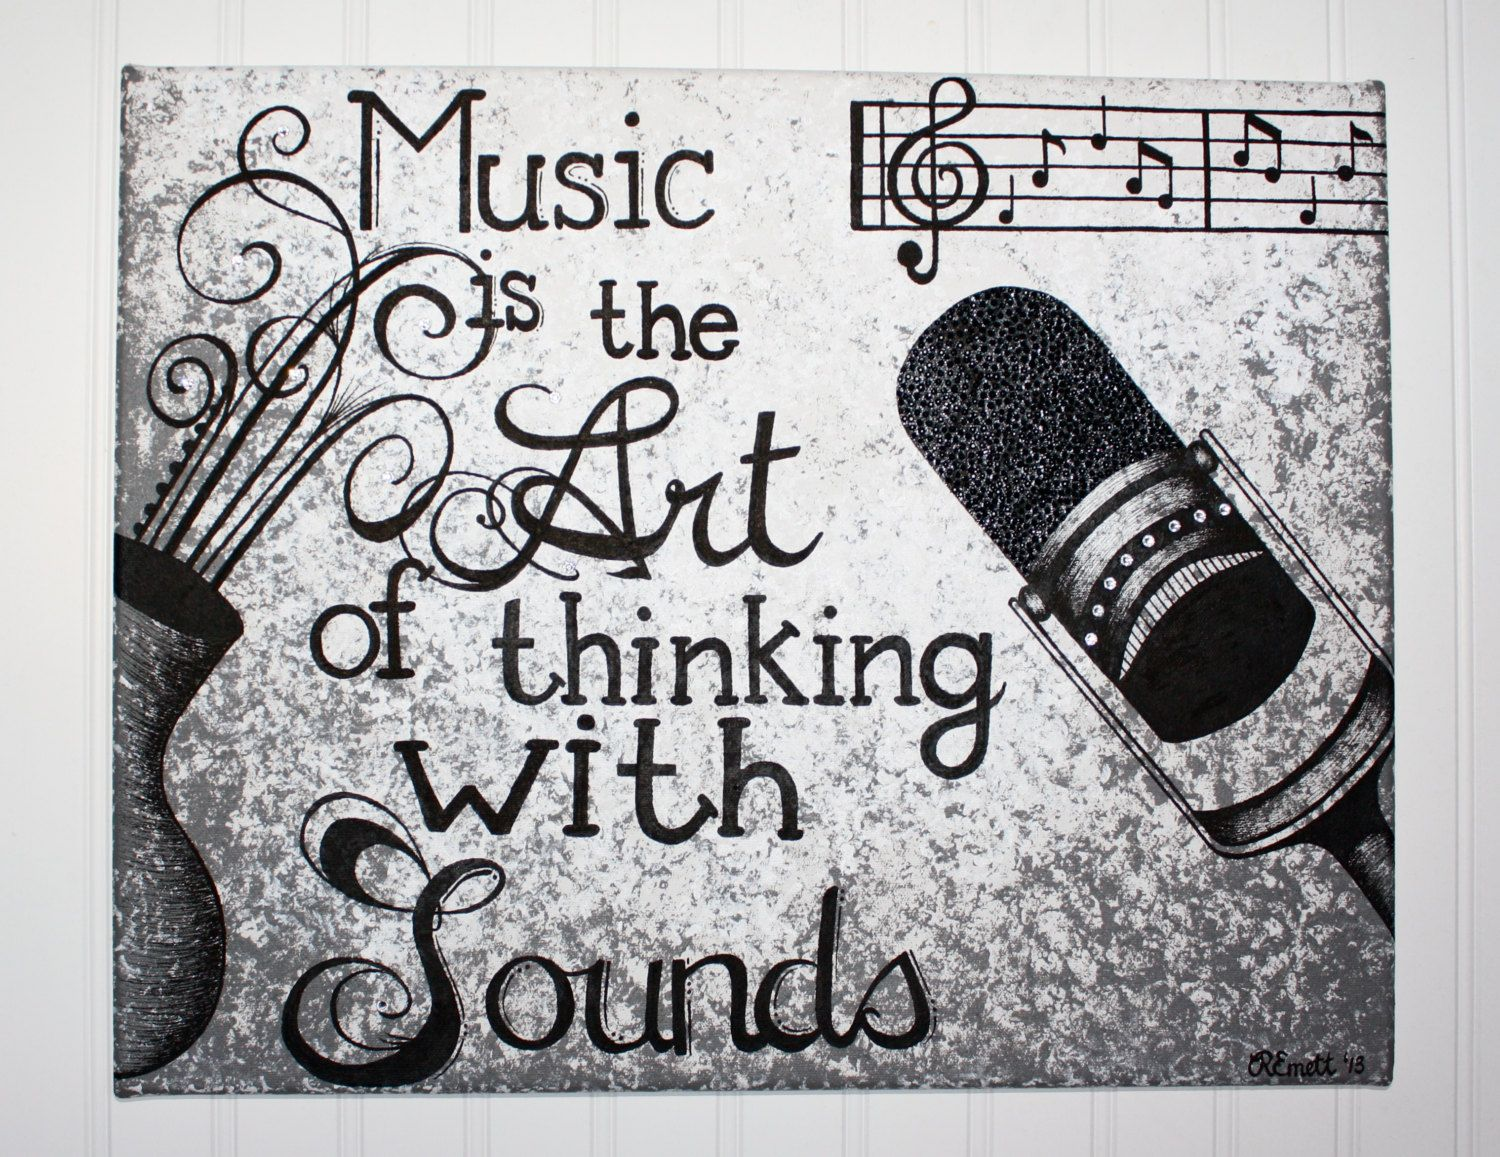 music is the art of thinking with sounds sound of music music is the art of thinking with sounds